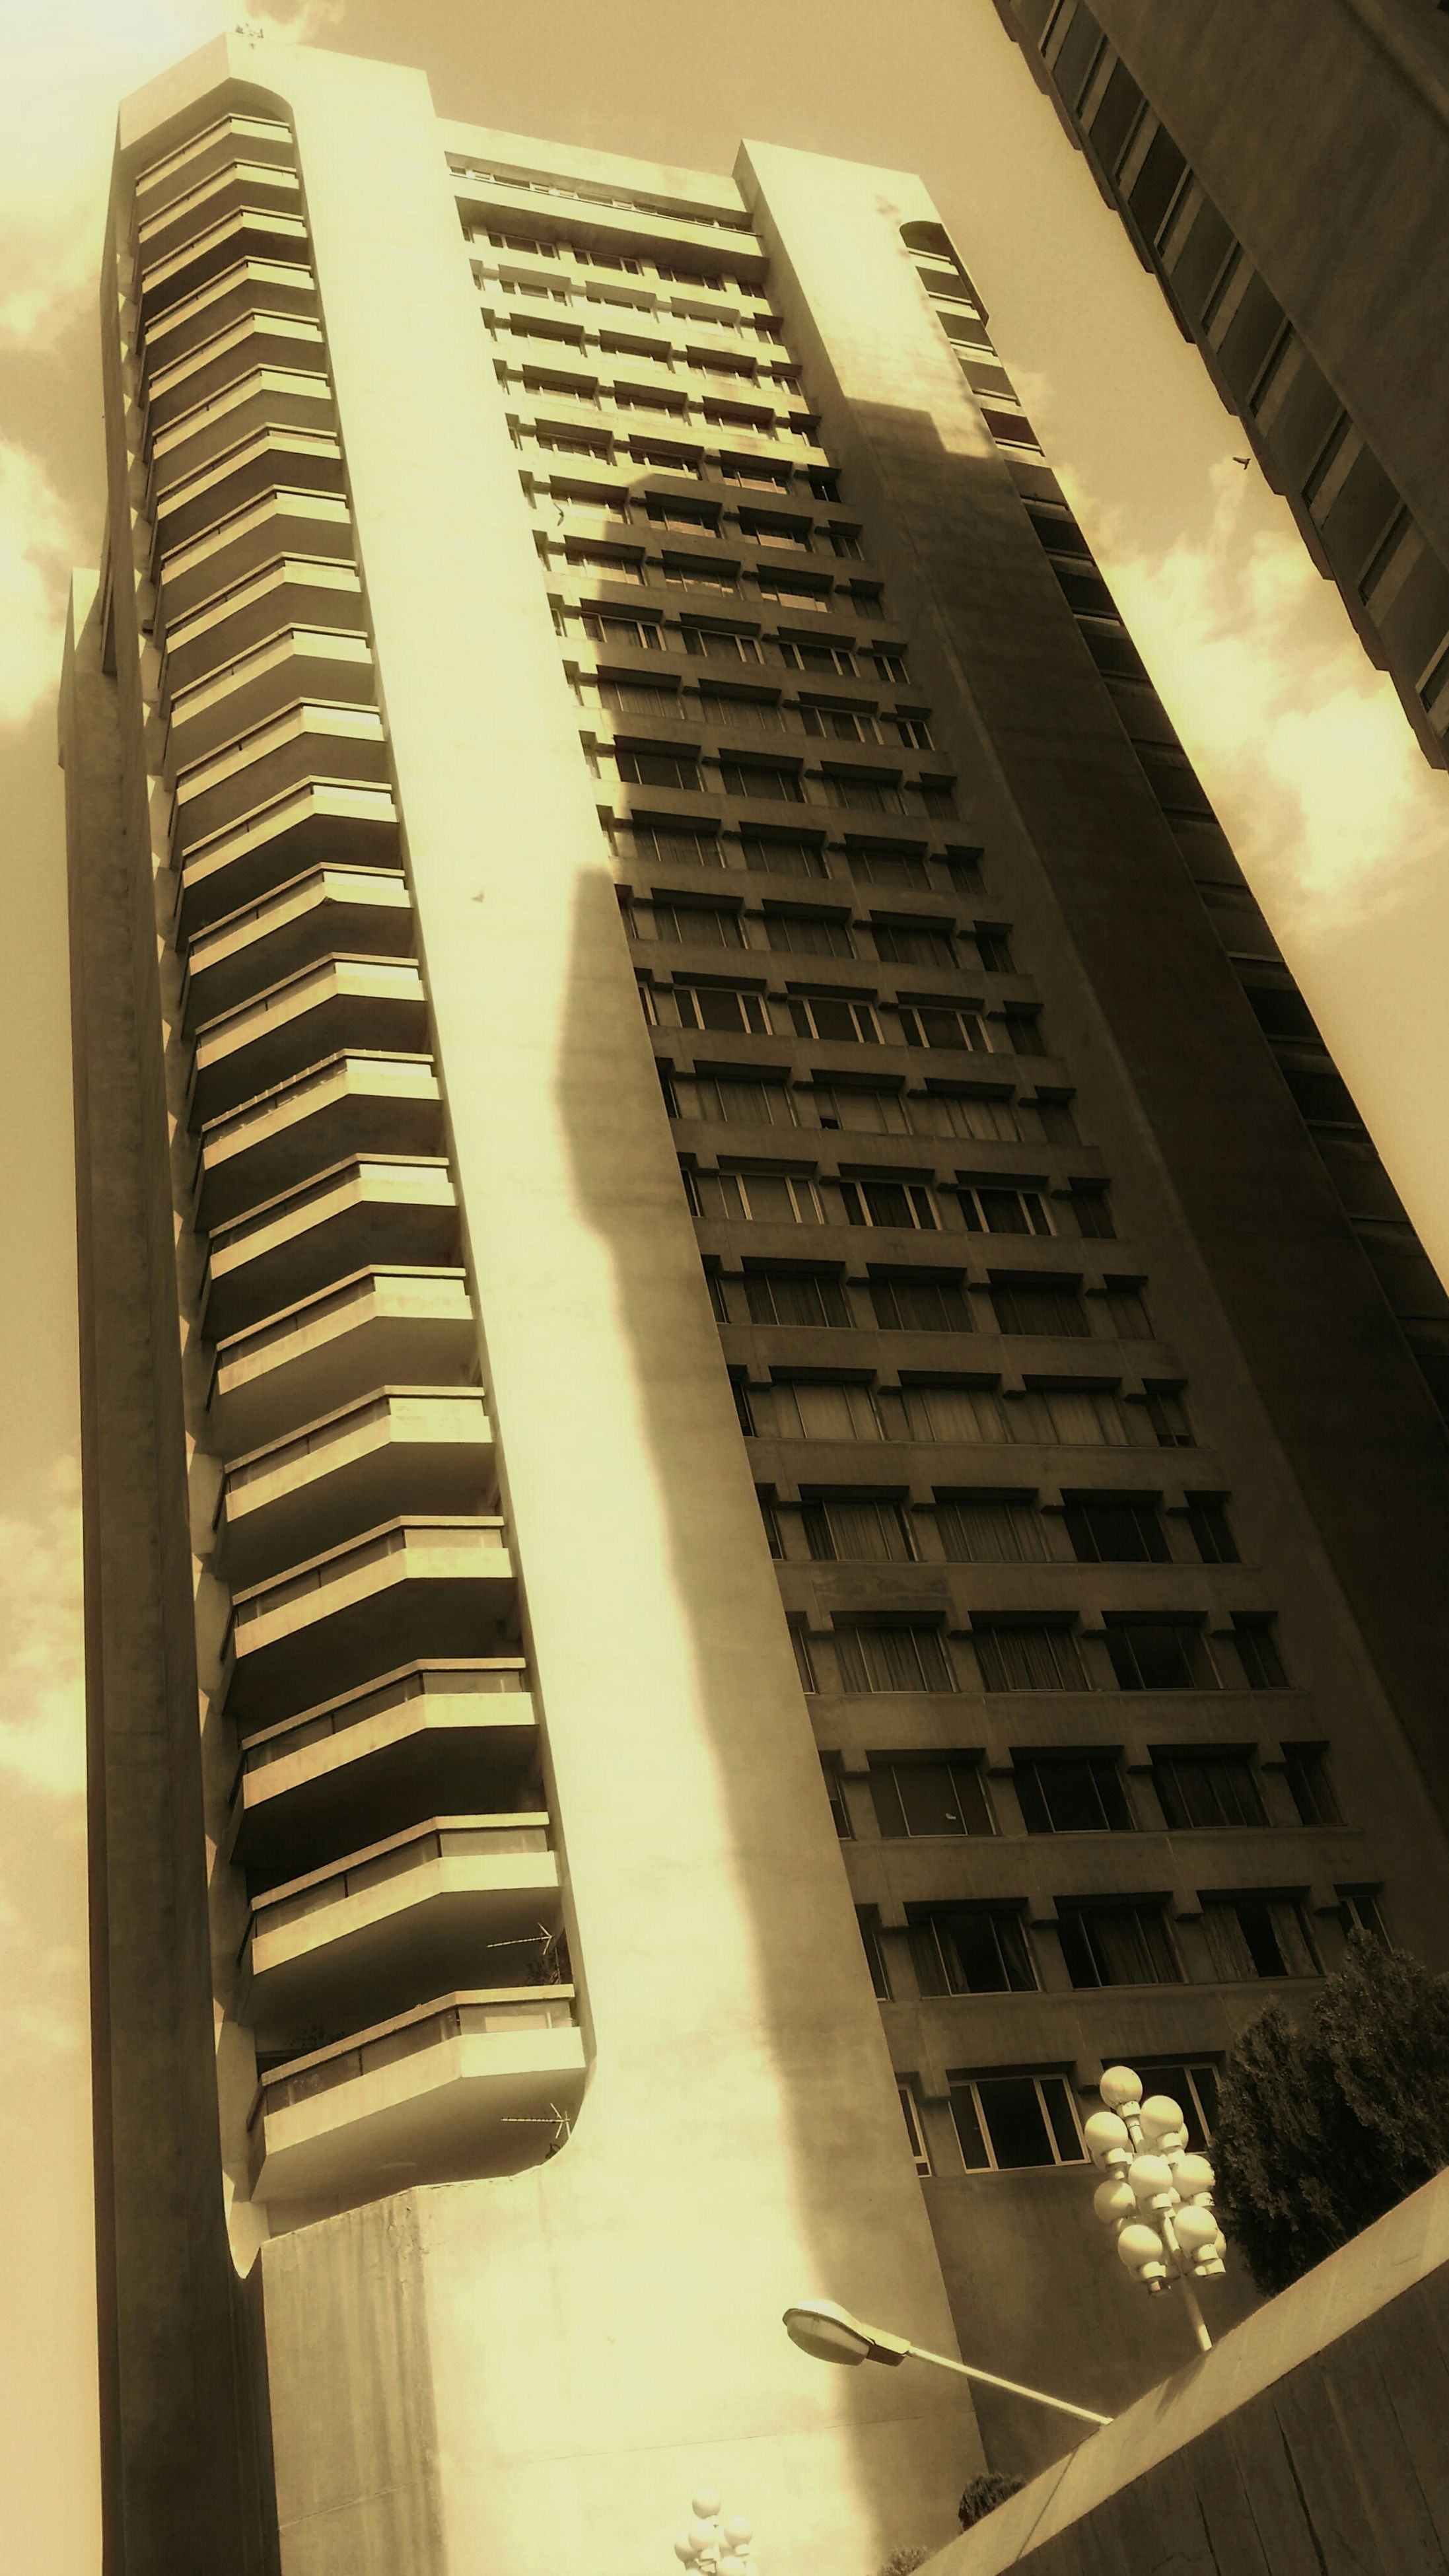 architecture, building exterior, built structure, modern, skyscraper, city, office building, building, tall - high, low angle view, high angle view, no people, tower, tall, tilt, day, outdoors, city life, sky, residential building